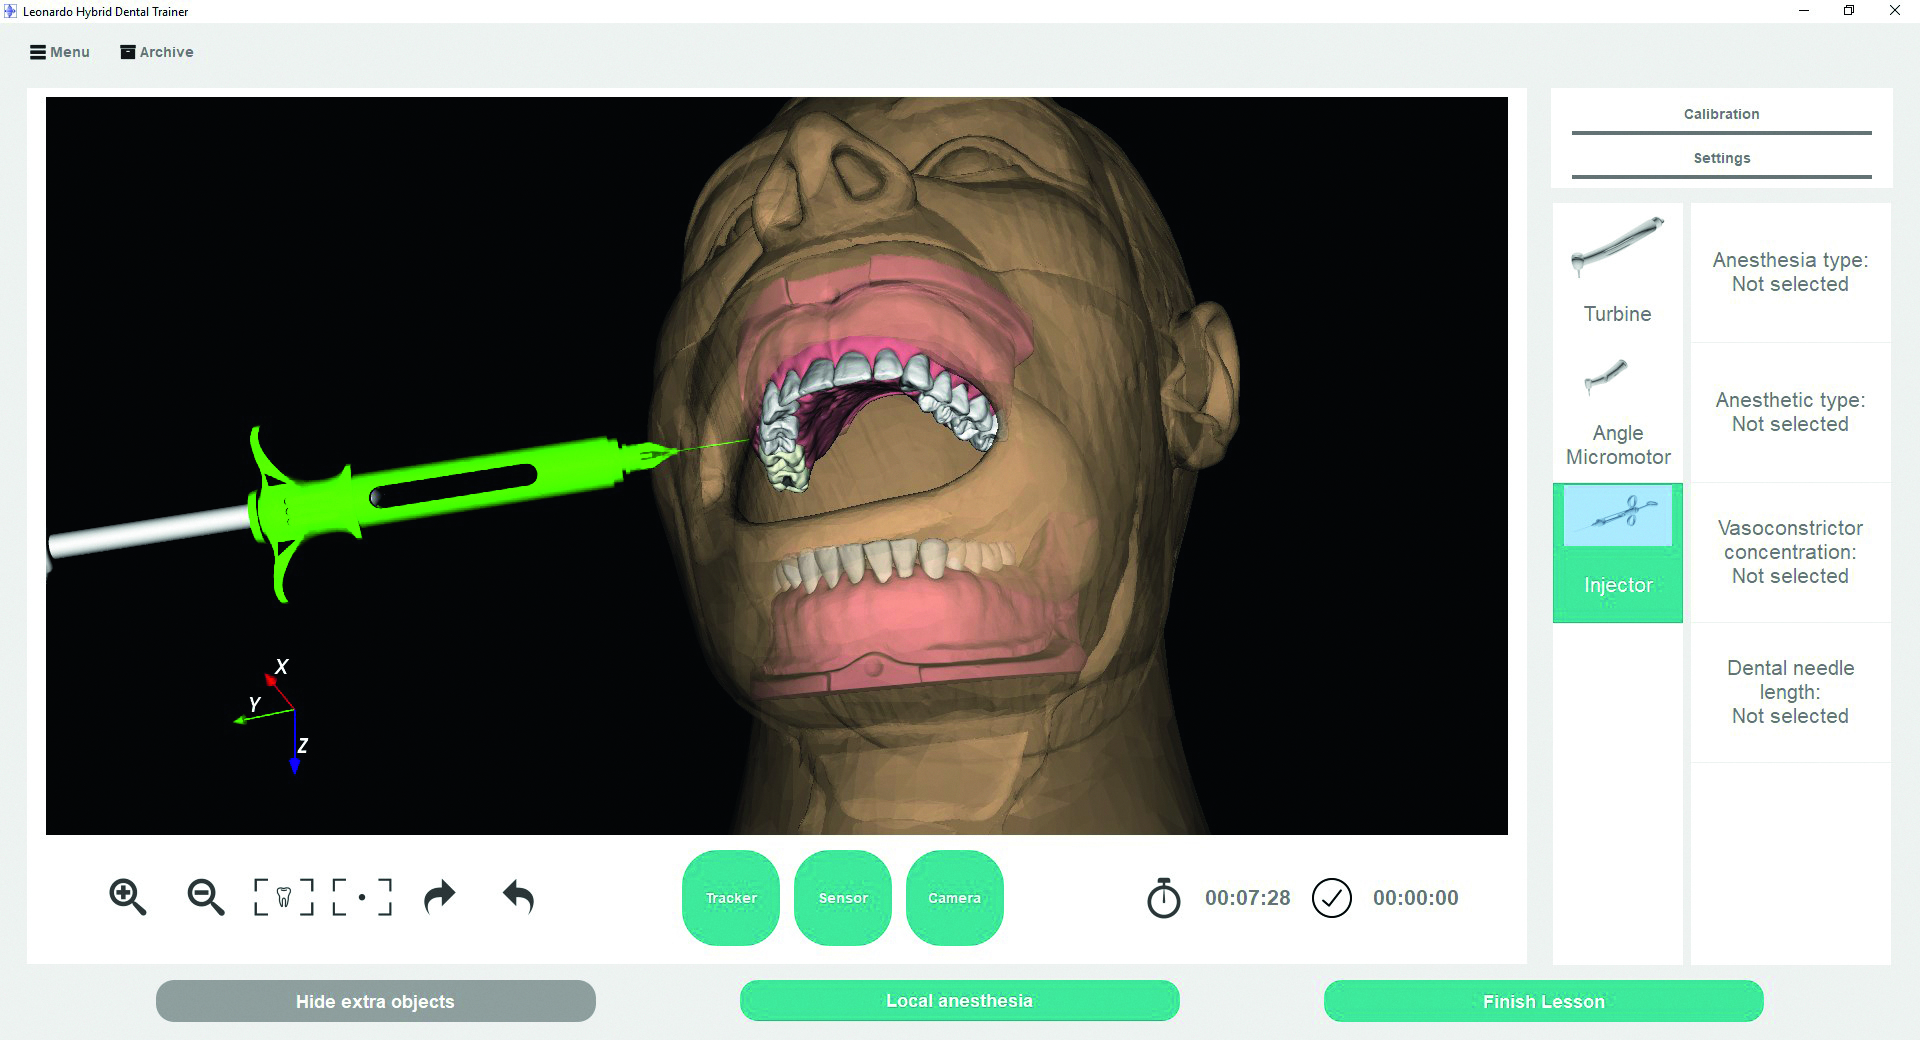 Case Study Hybrid Vr Dental Training Simulator For Education Telephone Wiring Tool Moreover Work Punch Down Extension Geotar Media Screen Interface Showing 6dof Tracking Of